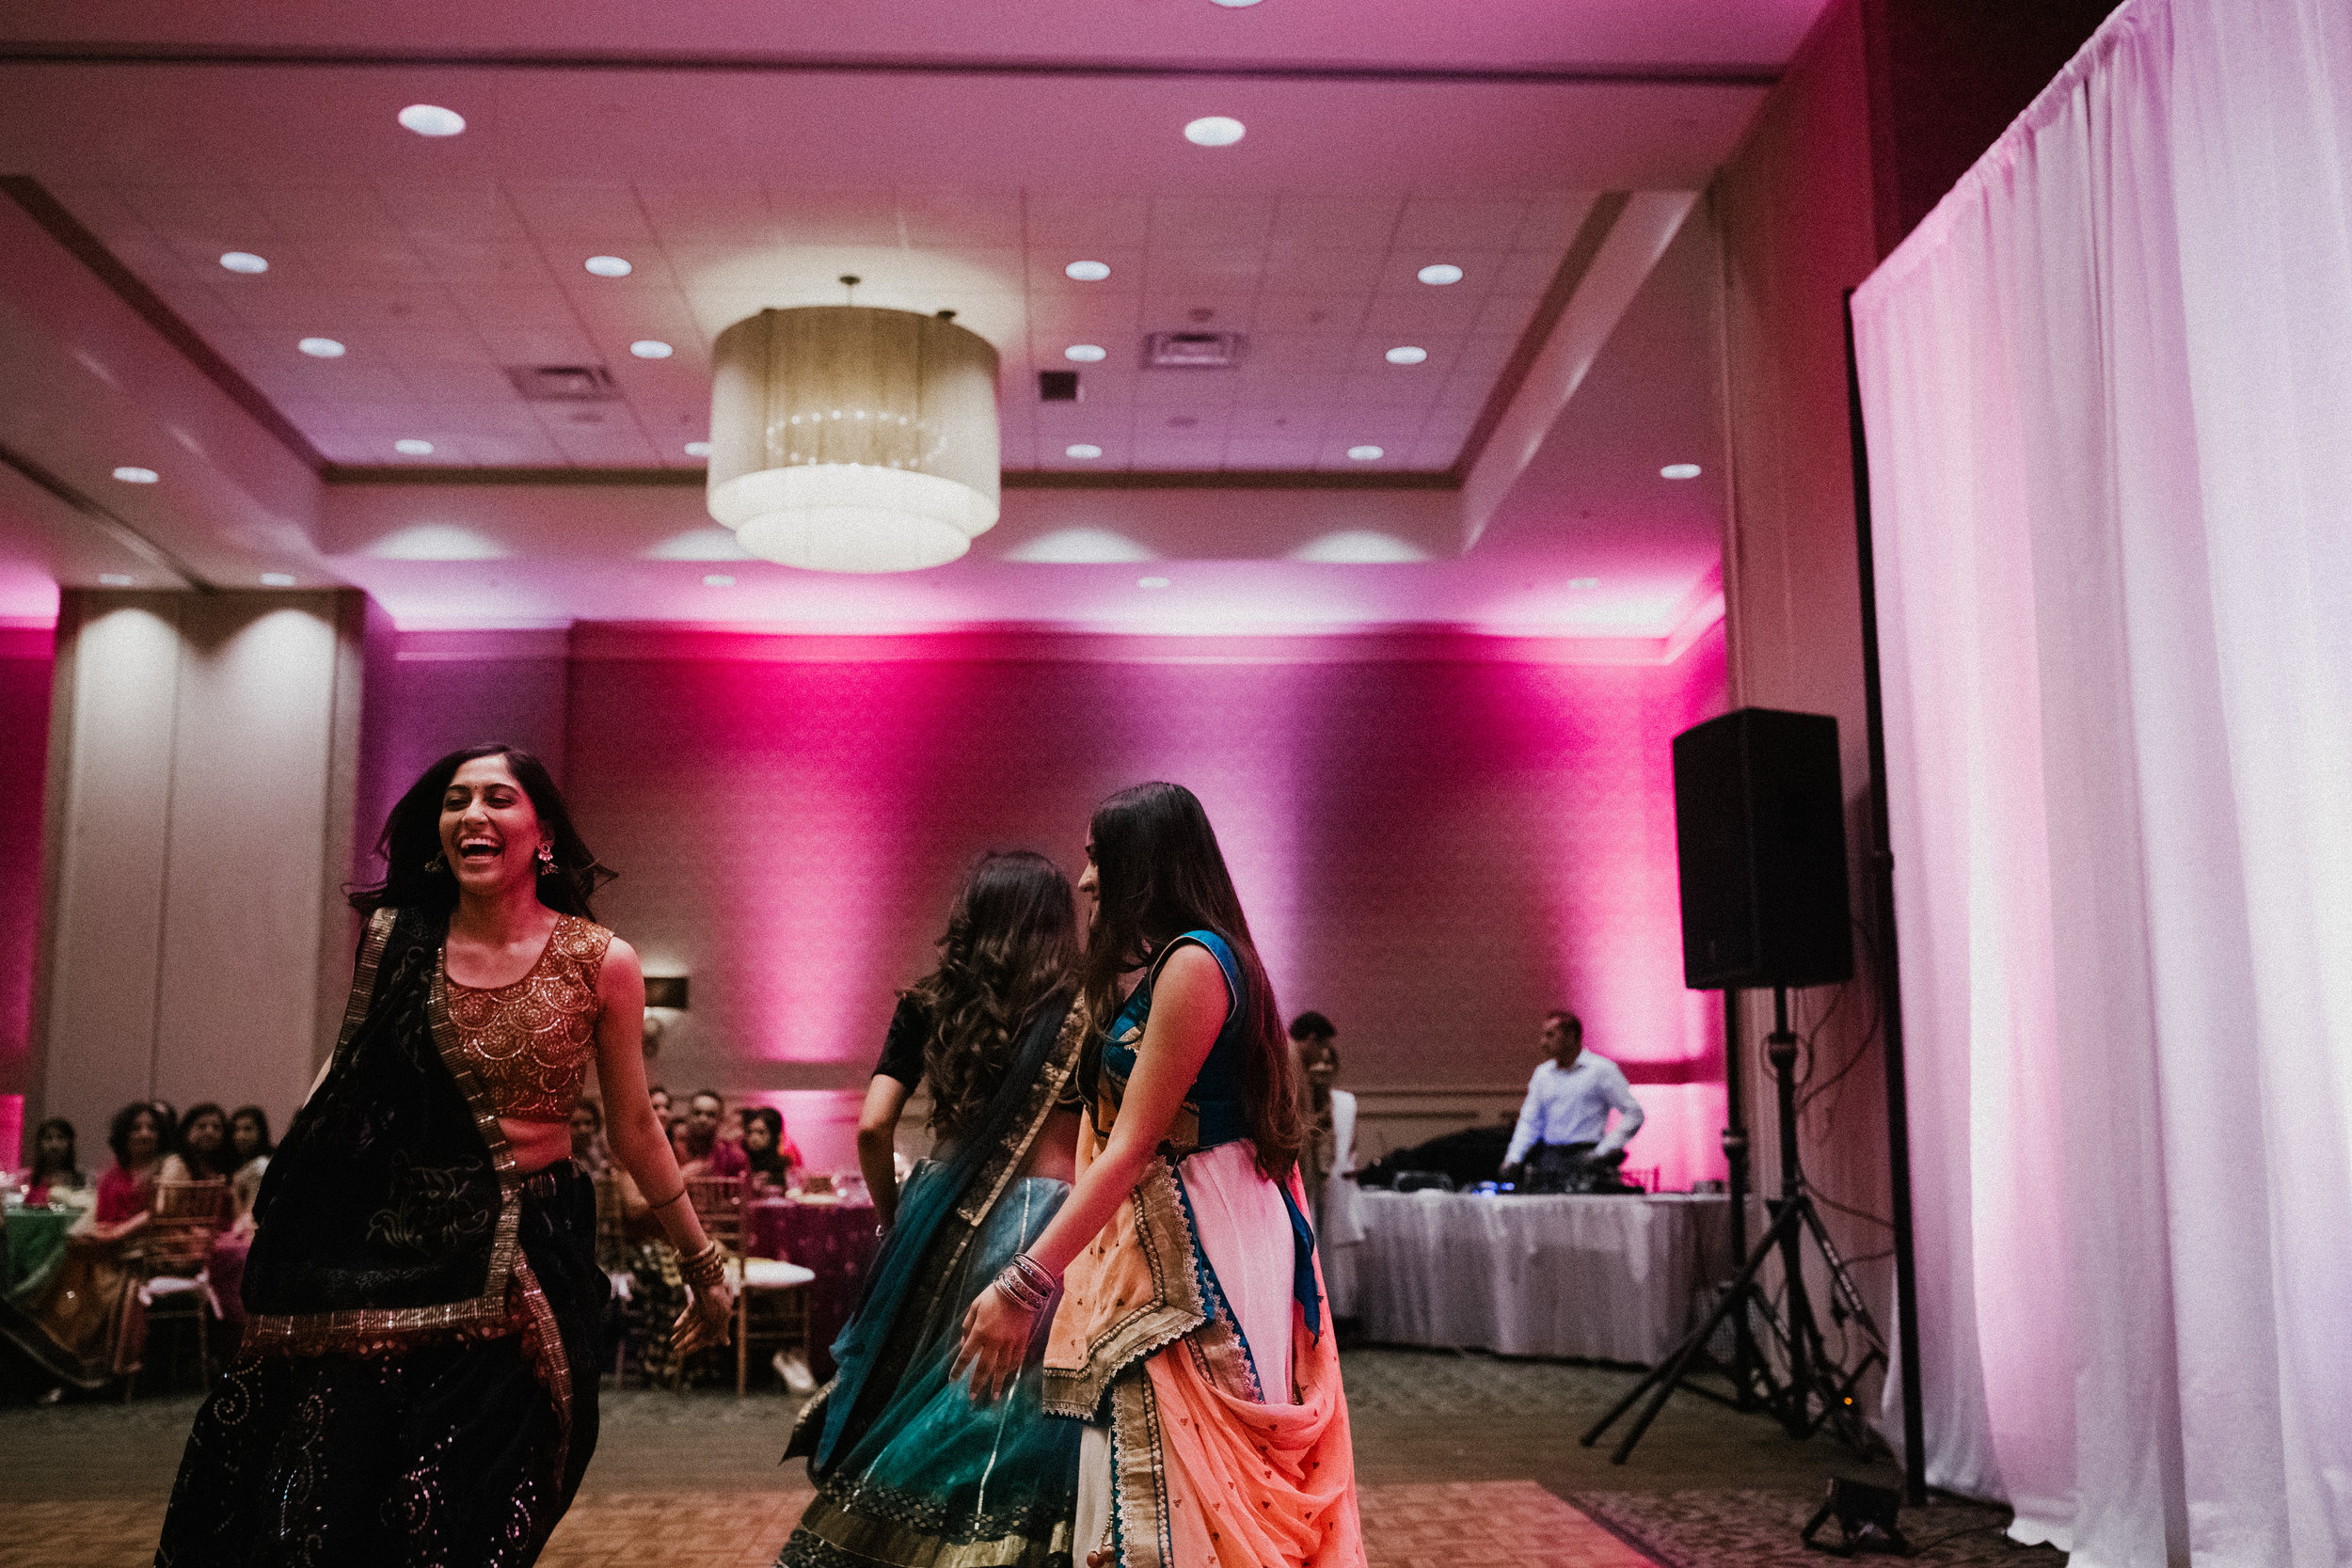 Aparna-Ankit-Patel-Shah-Detroit-Michigan-Shadow-Shine-Pictures-Photography-Indian-Wedding-Mid-West